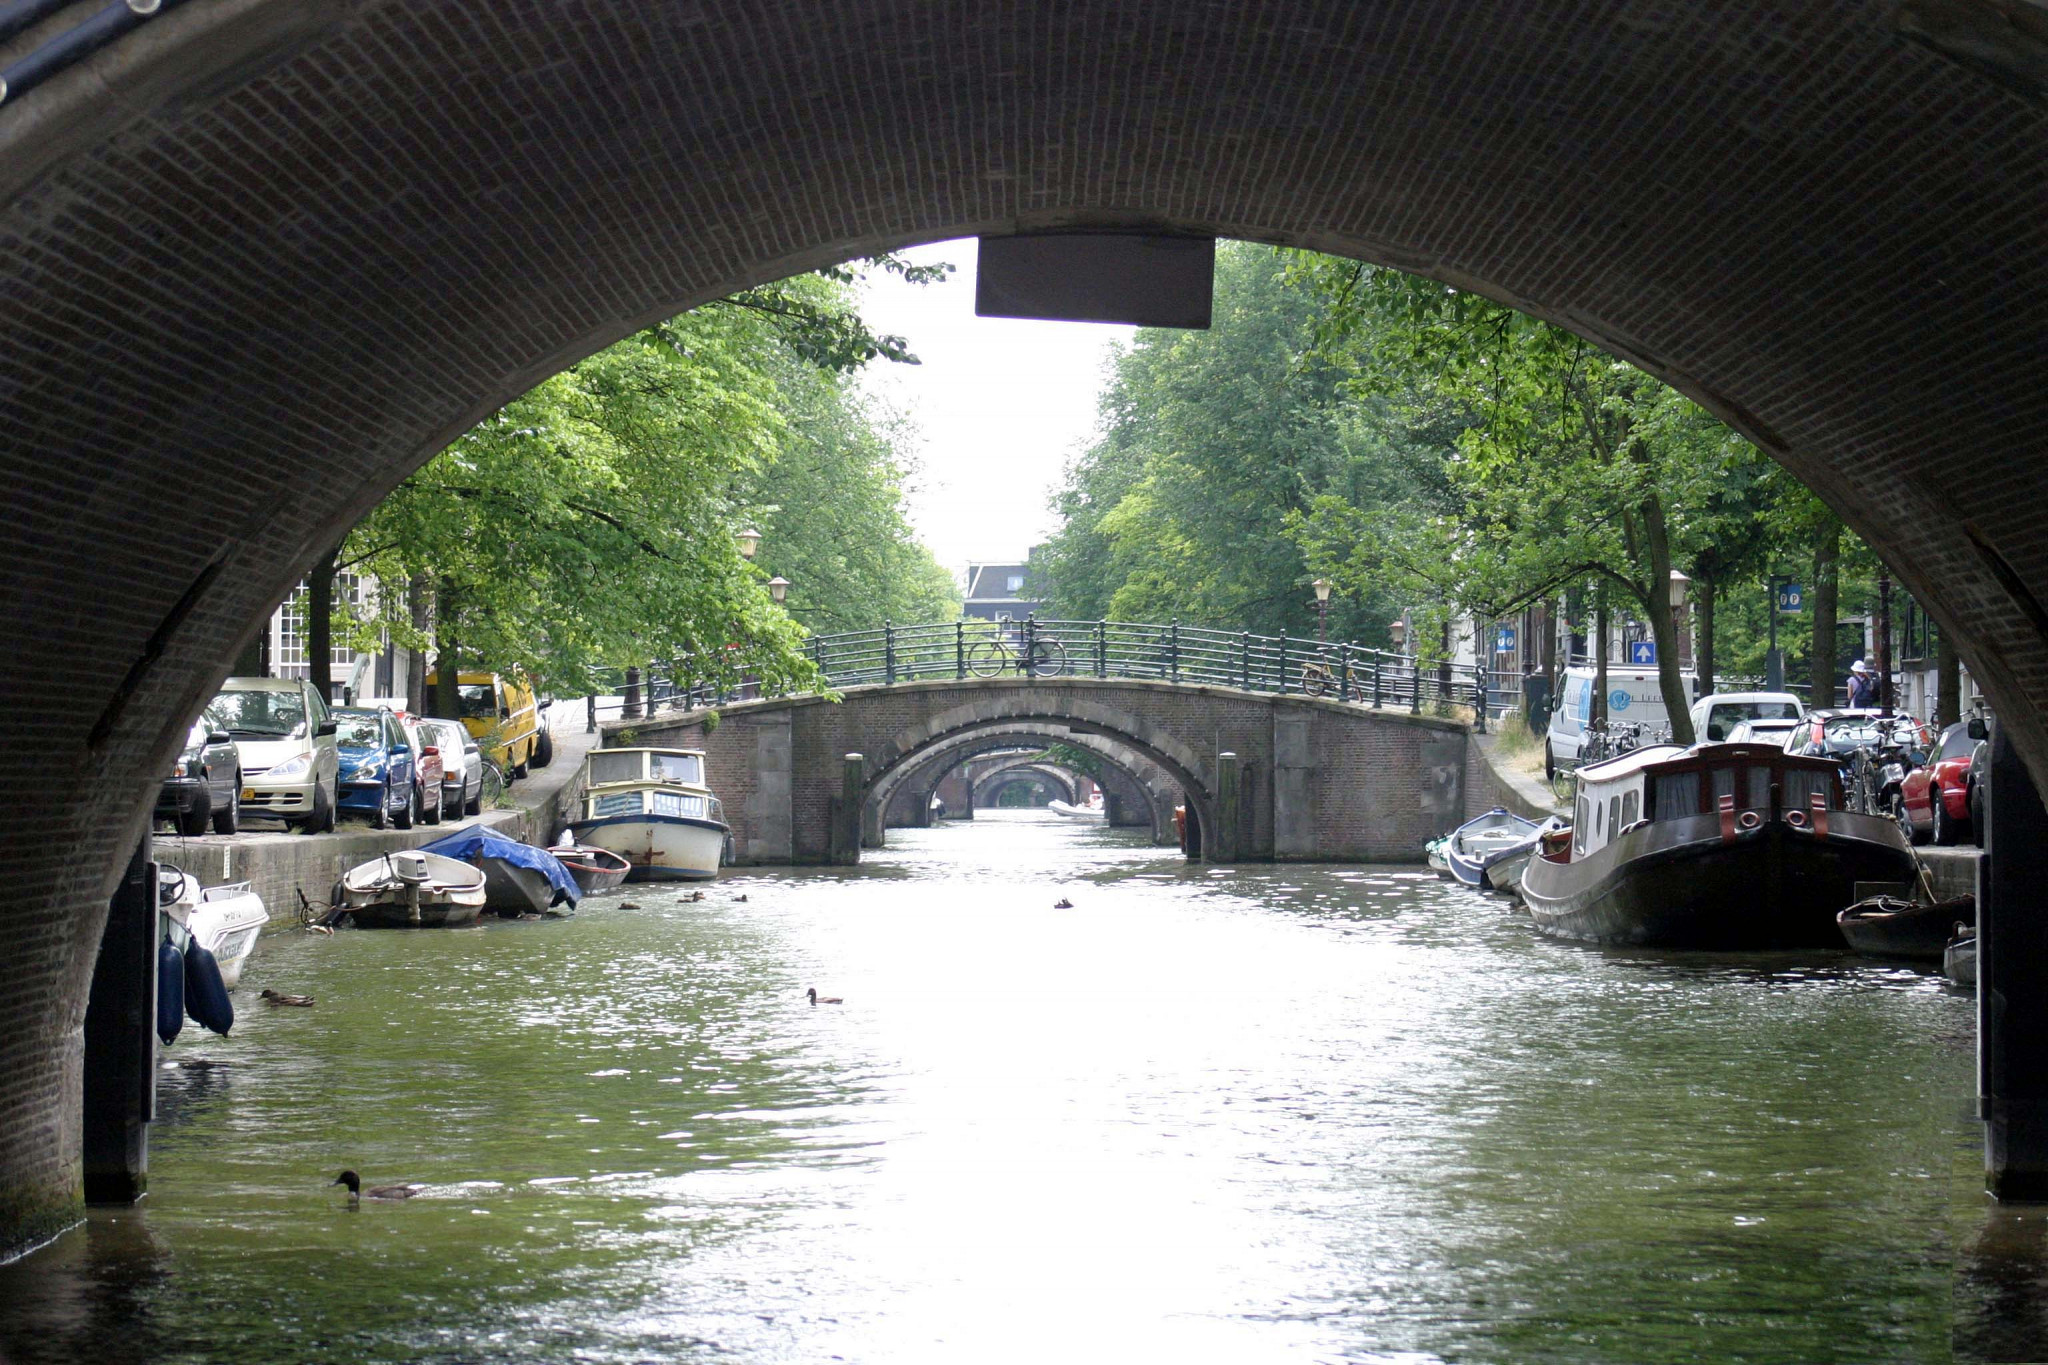 Through the Canals